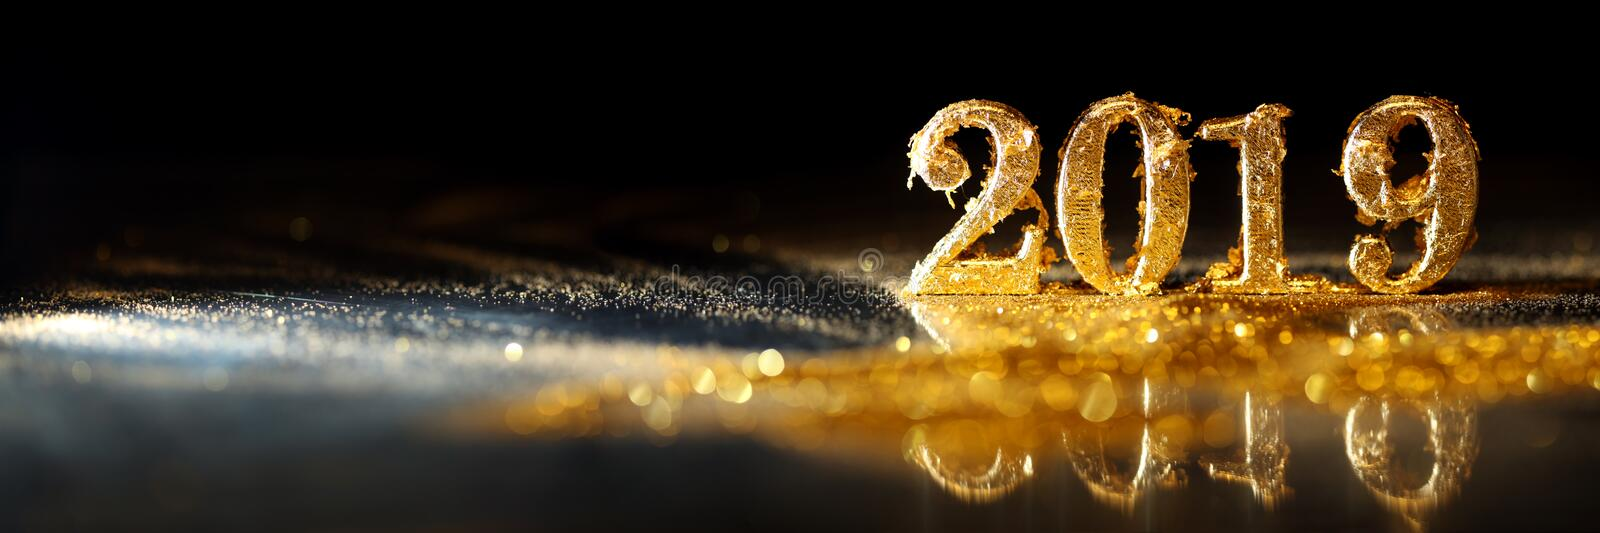 2019 in gold numbers celebrating the New Year royalty free stock photography